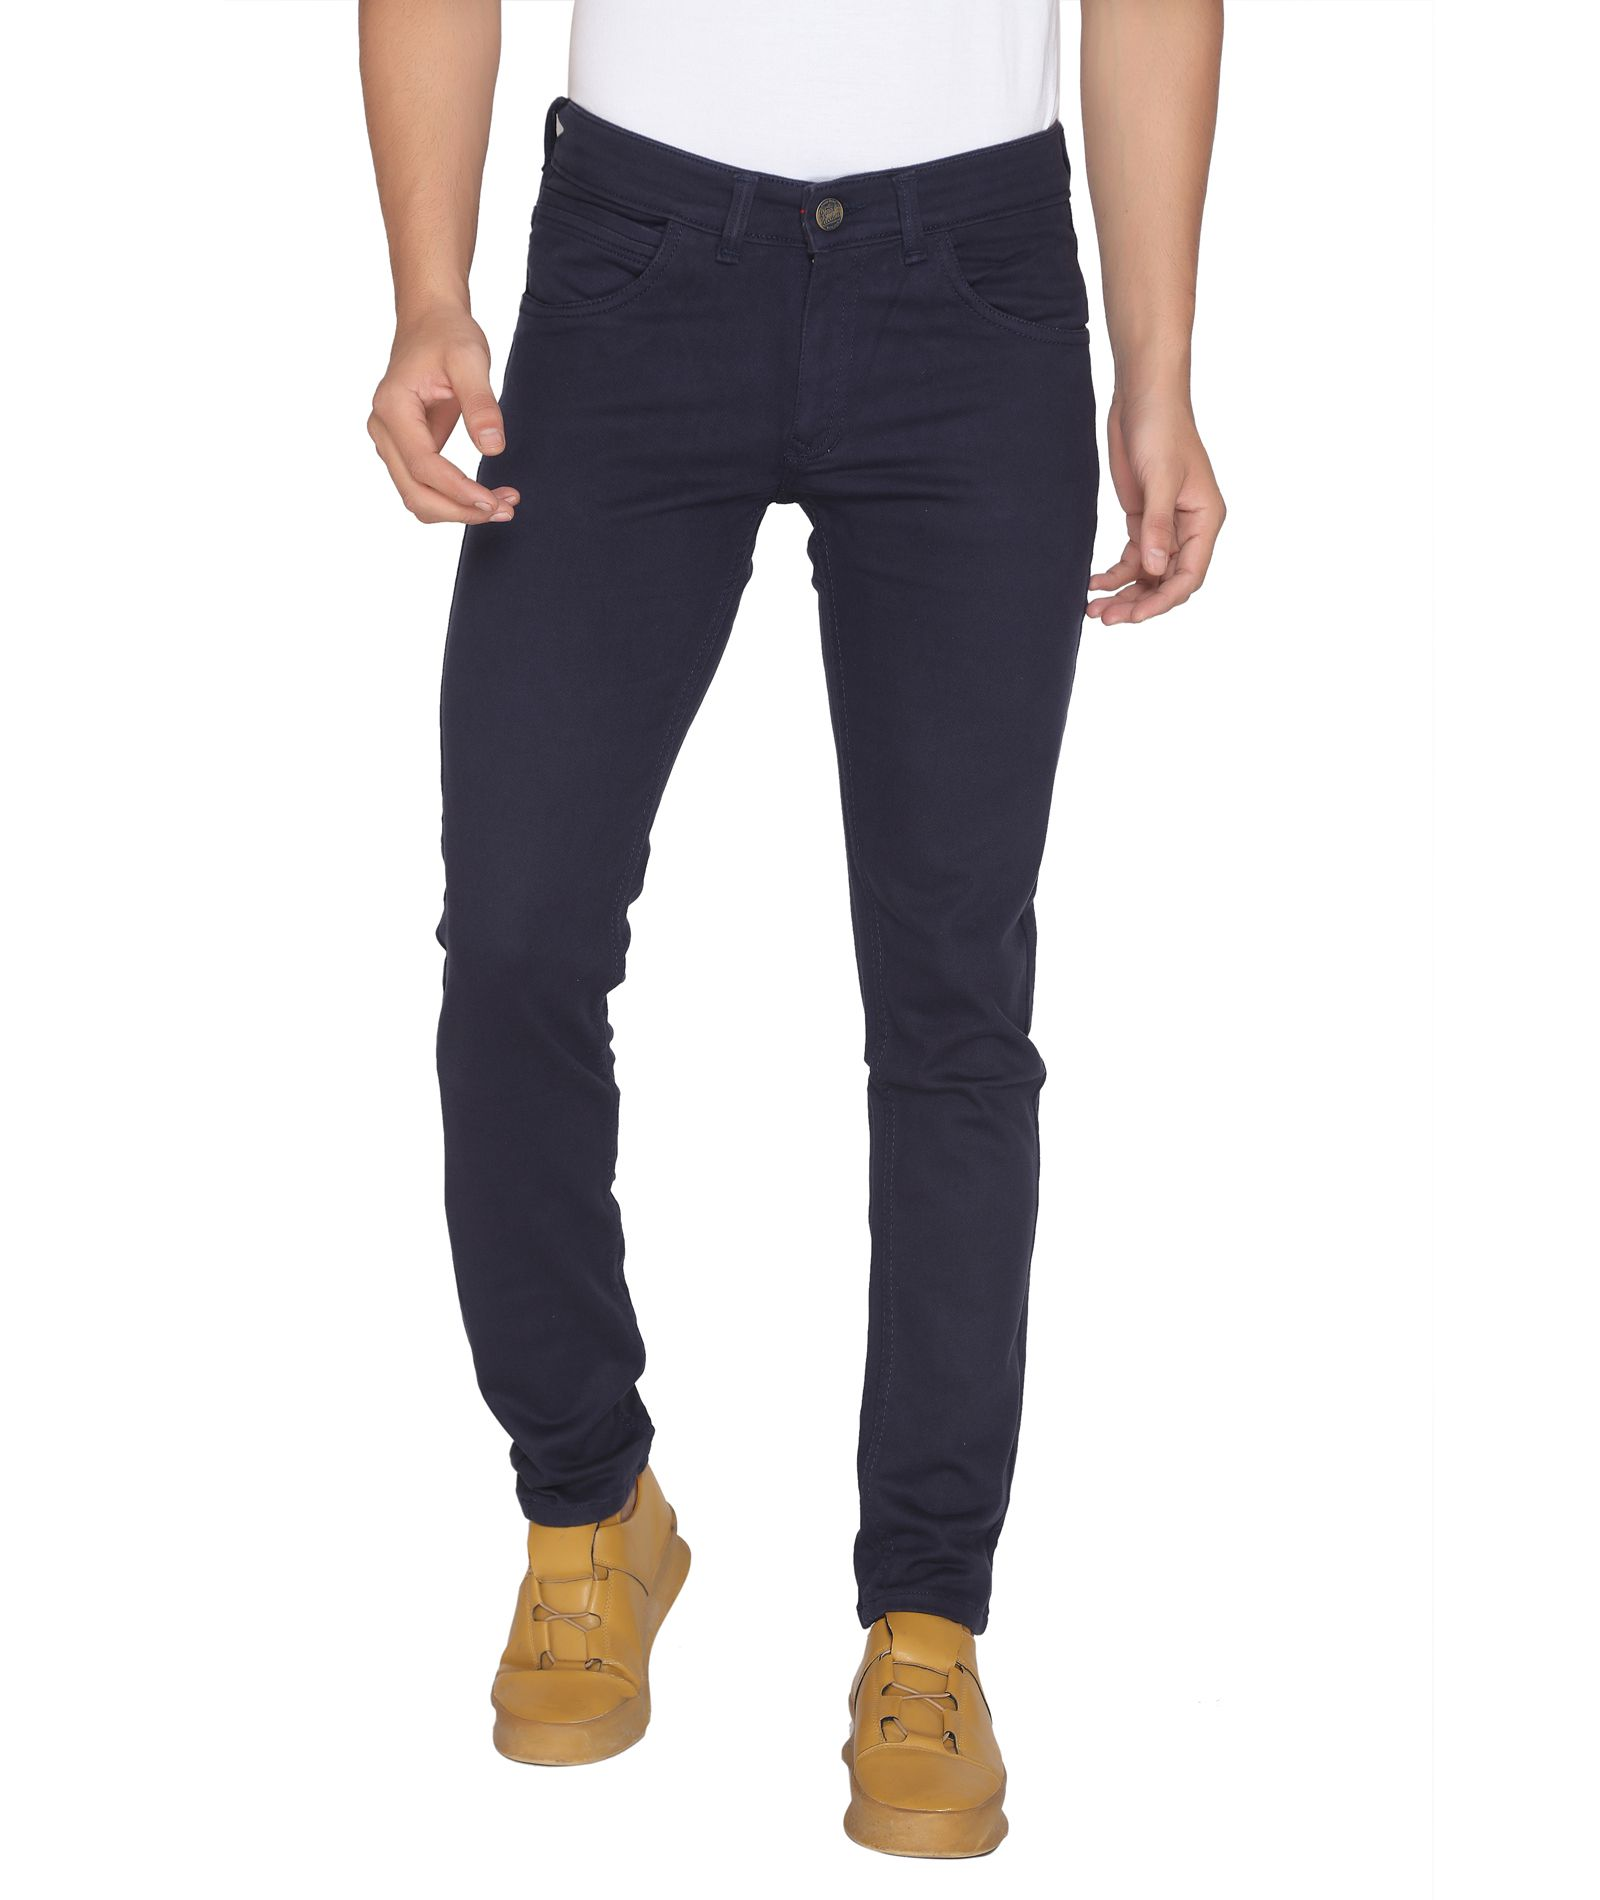 ROAD ROCKERS Dark Blue Skinny Jeans